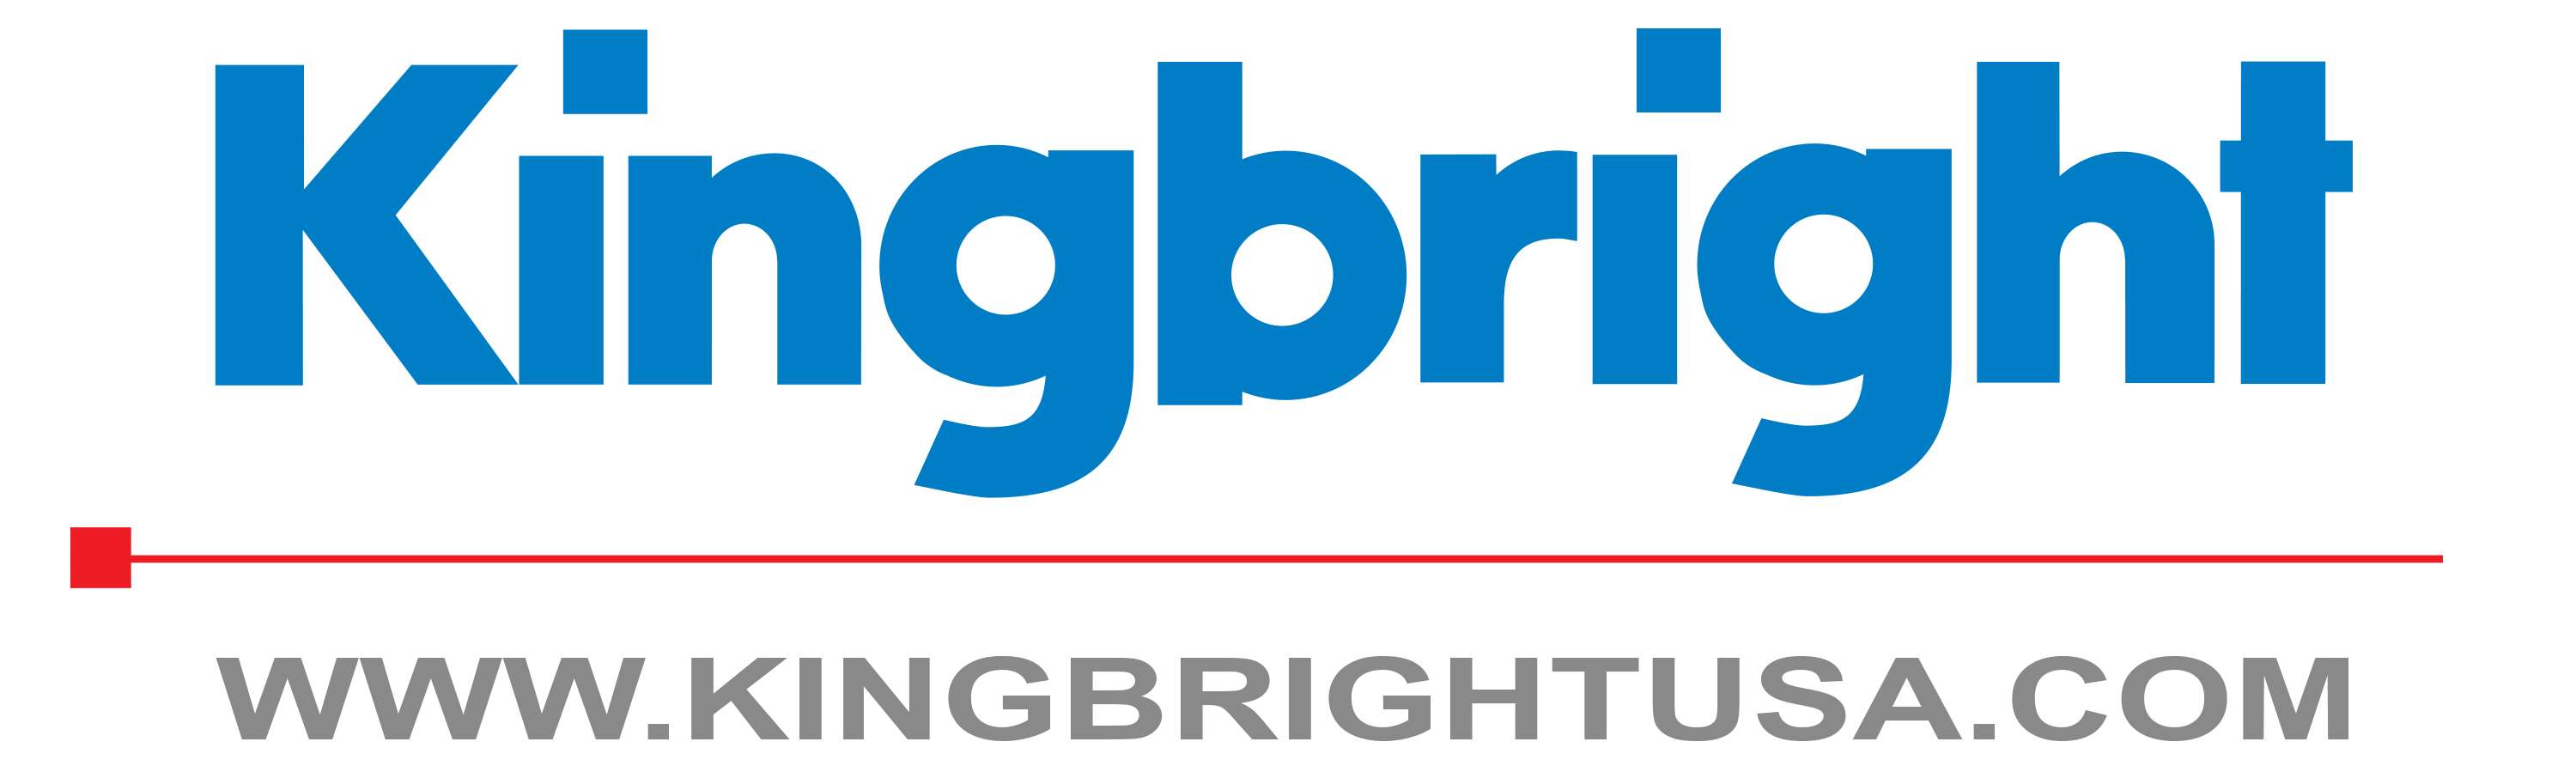 Kingbright_logo_d